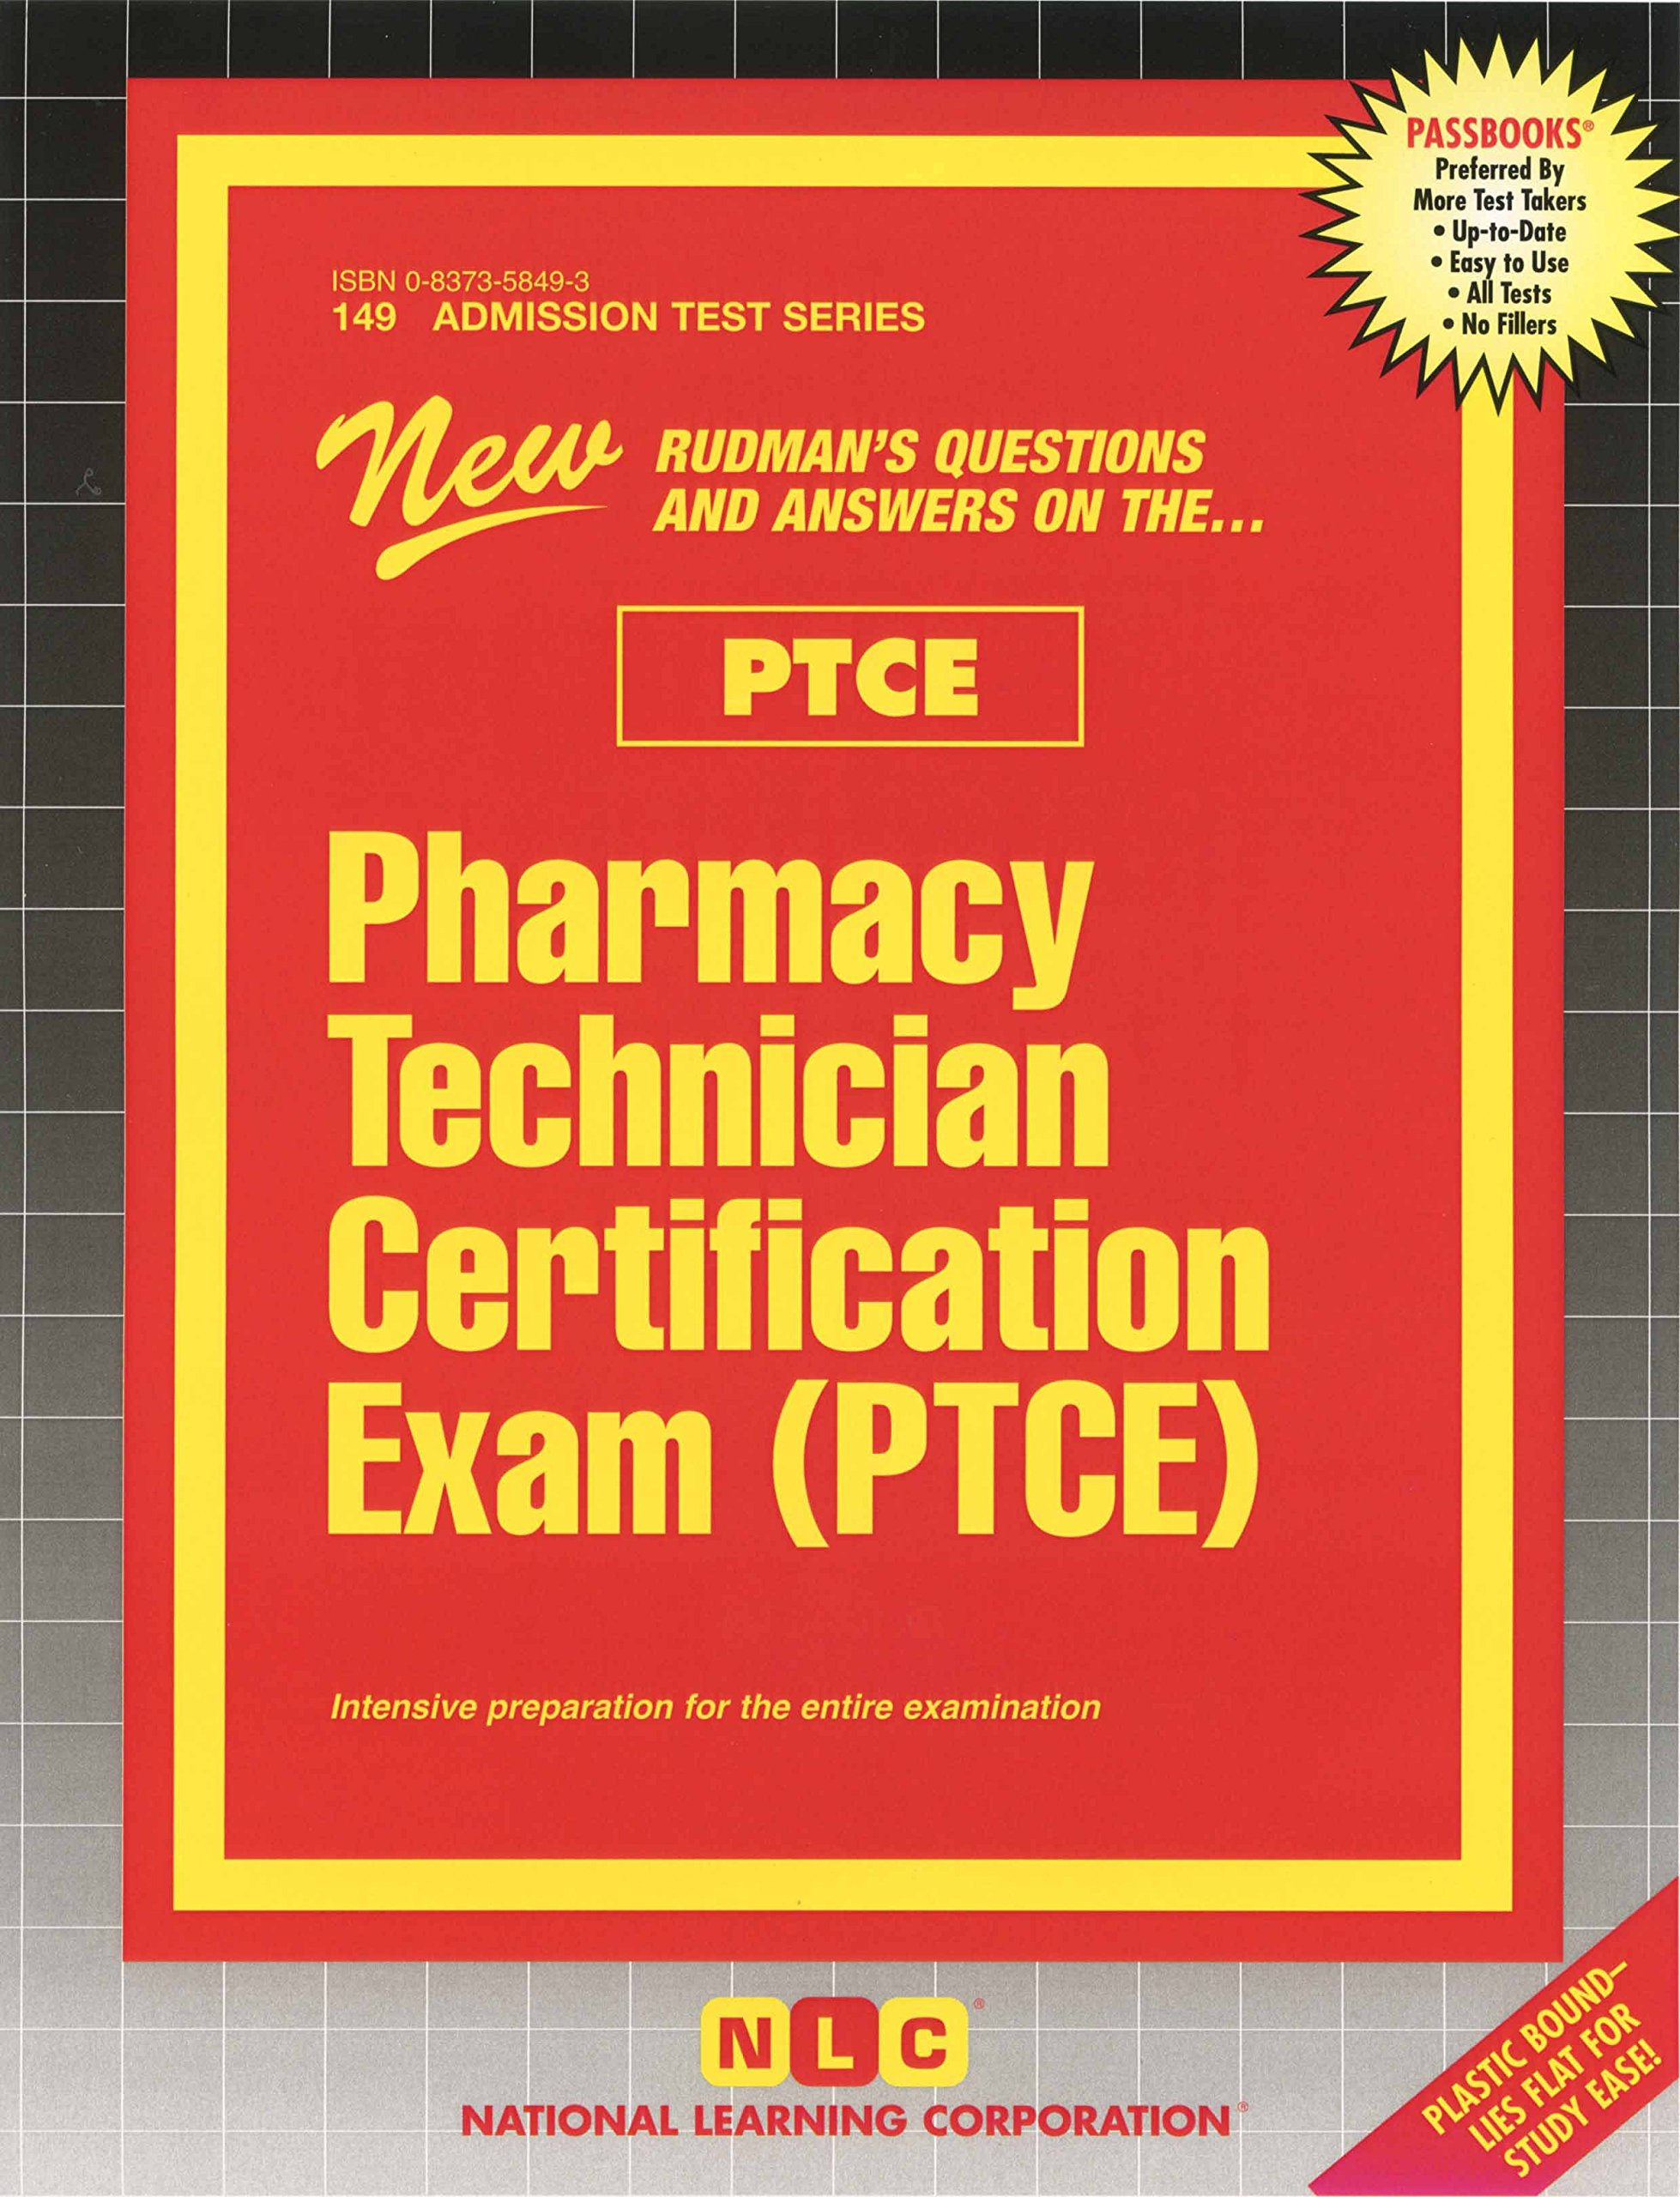 Pharmacy technician certification exam ptce jack rudman pharmacy technician certification exam ptce jack rudman 9780837358499 pharmacy amazon canada xflitez Choice Image